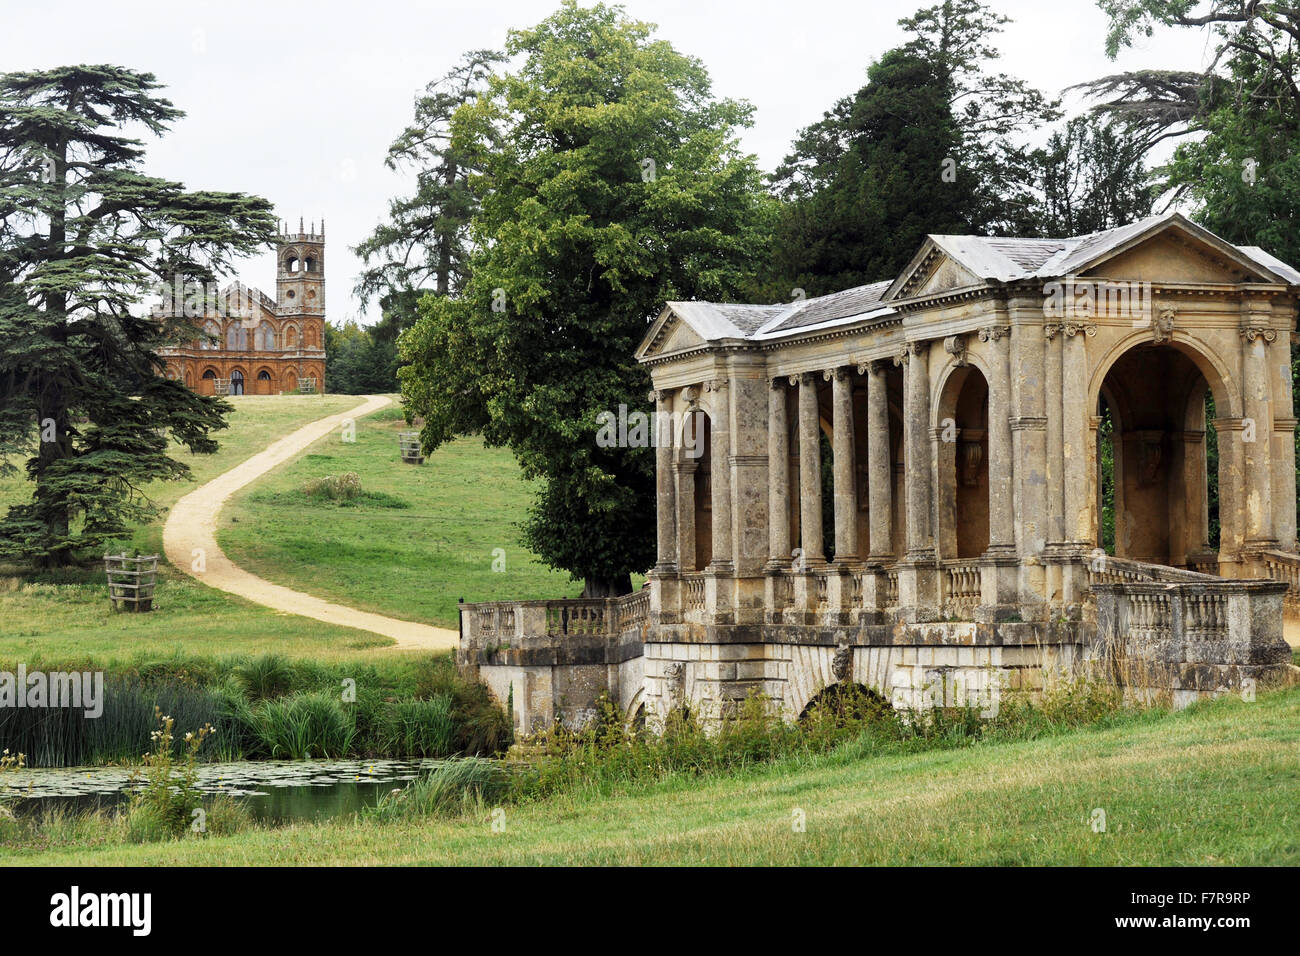 Beautiful Stock Photo   The Palladian Bridge At Stowe, Buckinghamshire. Stowe Is An  18th Century Landscape Garden, Featuring More Than 40 Historic Temples And  ... Amazing Design